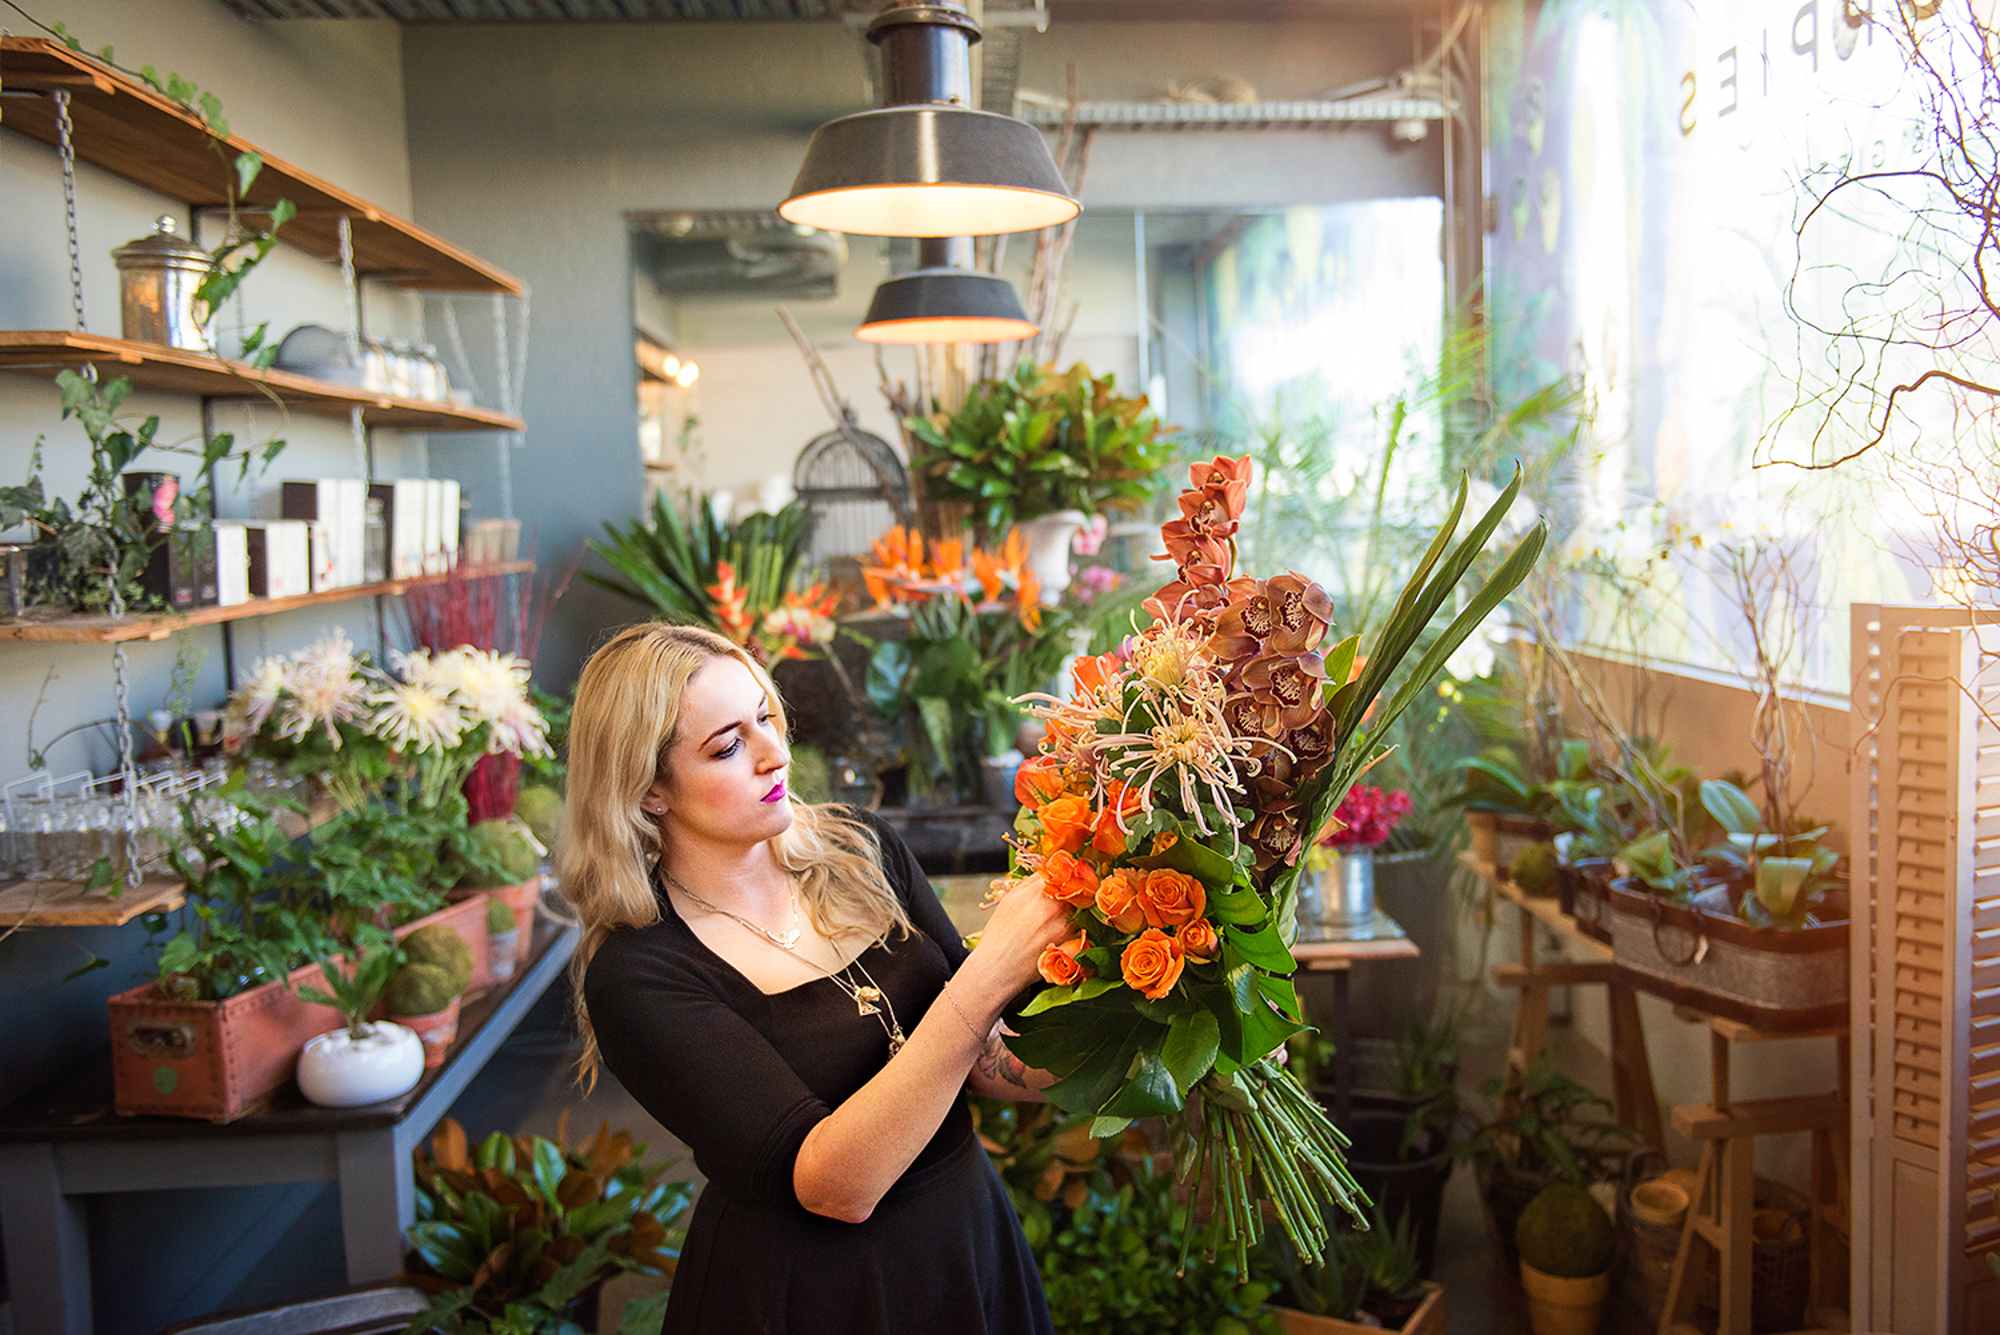 Mel Nickerson-Auckland Florist - Melissa Nickerson Photography - May 2018.jpg